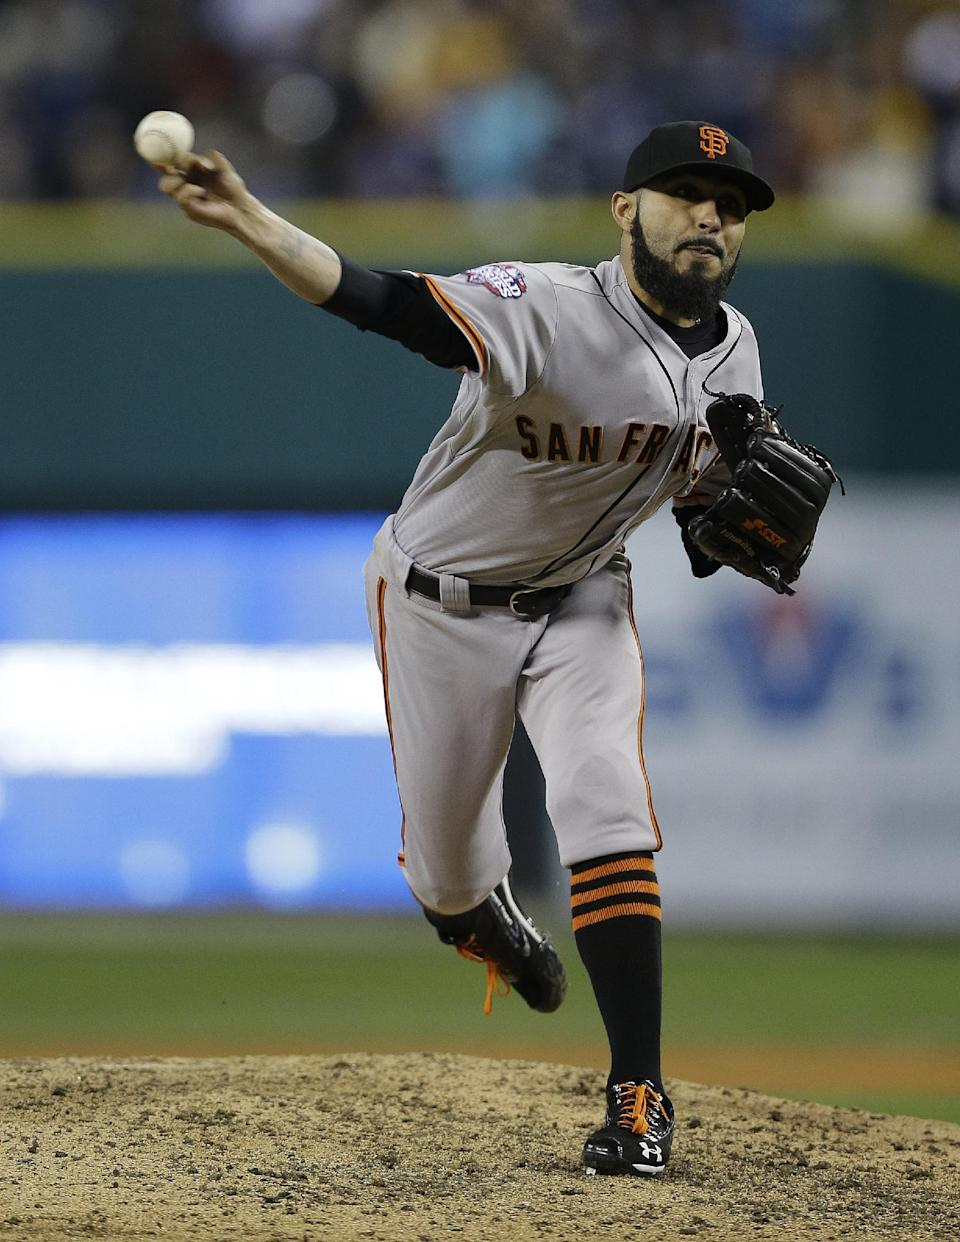 San Francisco Giants' Sergio Romo throws during the ninth inning of Game 3 of baseball's World Series against the Detroit Tigers Saturday, Oct. 27, 2012, in Detroit. (AP Photo/Matt Slocum)